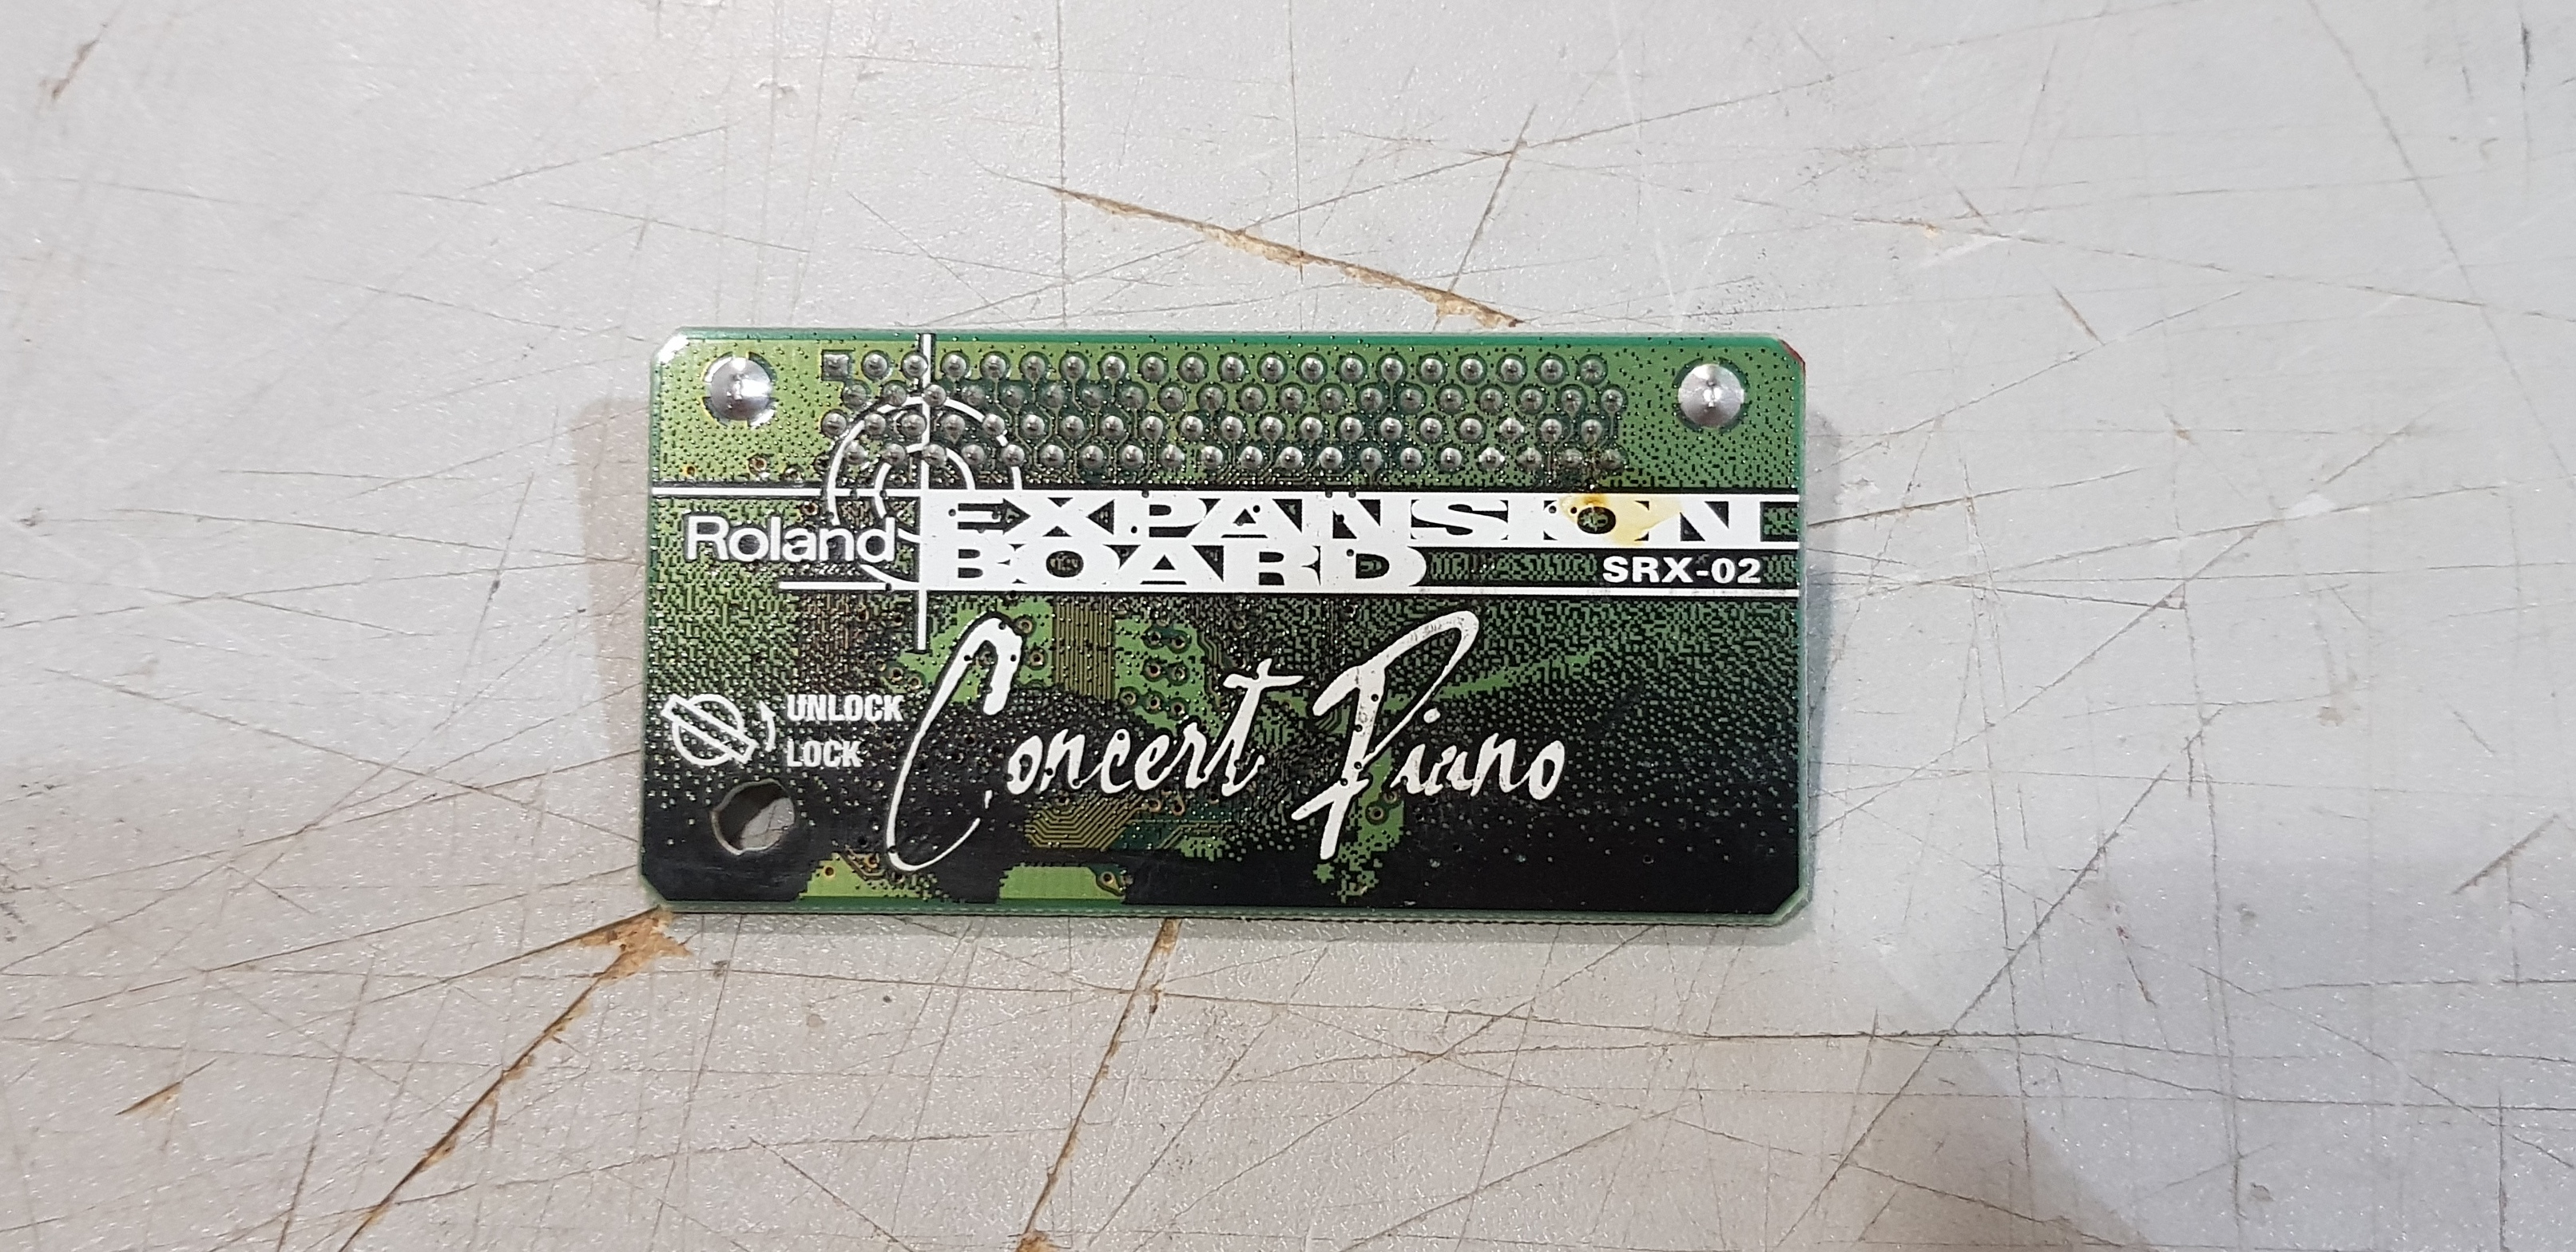 ROLAND SRX-02 CONCERT PIANO Expansion Board